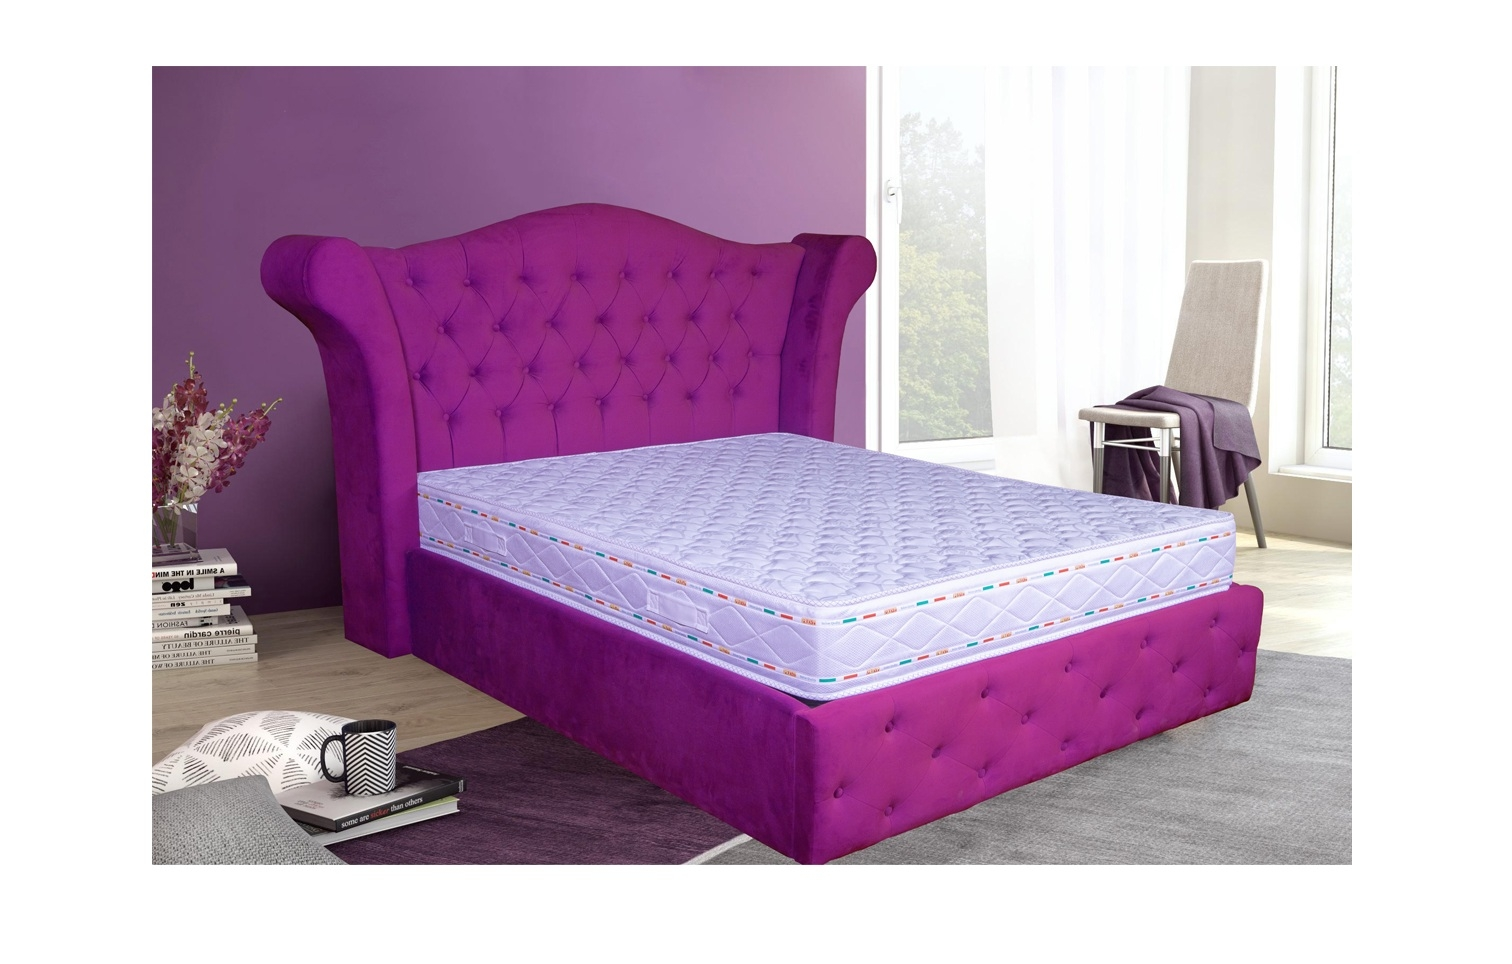 Saltea Ortopedica Pocket Memory Aquagel 7 Zone Confort